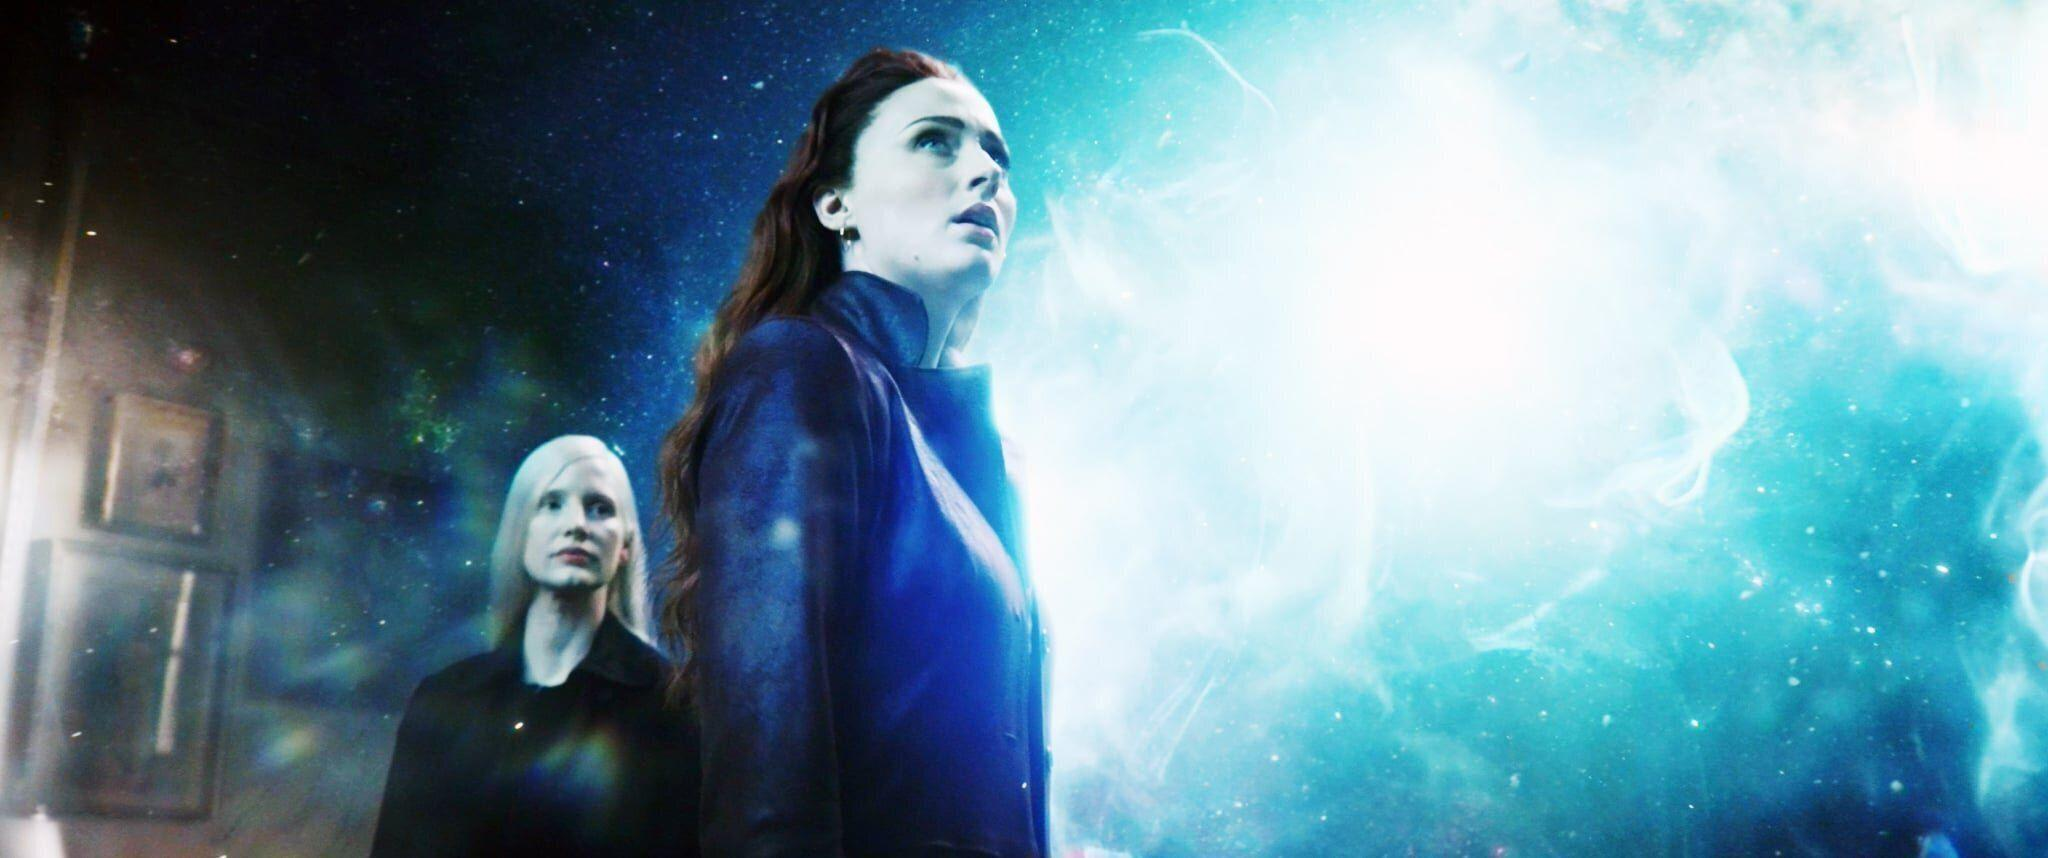 """<p>Picking up nearly a decade after the events of <strong>Apocalypse</strong> and a baffling 30 years after <strong>First Class</strong>, <strong>Dark Phoenix </strong>takes place in 1992. Although Charles Xavier and Erik Lehnsherr have apparently not aged in three decades, somehow, over the next eight years, <a class=""""sugar-inline-link"""" title=""""Latest photos and news for James McAvoy"""" href=""""https://www.popsugar.com/James-McAvoy"""" target=""""_blank"""">James McAvoy</a> and Michael Fassbender are going to transform into Patrick Stewart and Ian McKellen. By this point in the films, Charles is supposedly 60 years old and Erik is 62, begging the question of whether they've been secretly harboring some antiaging mutant powers all along (and if so, what happens to them between 1992 and 2000 to take away those powers?). </p>"""